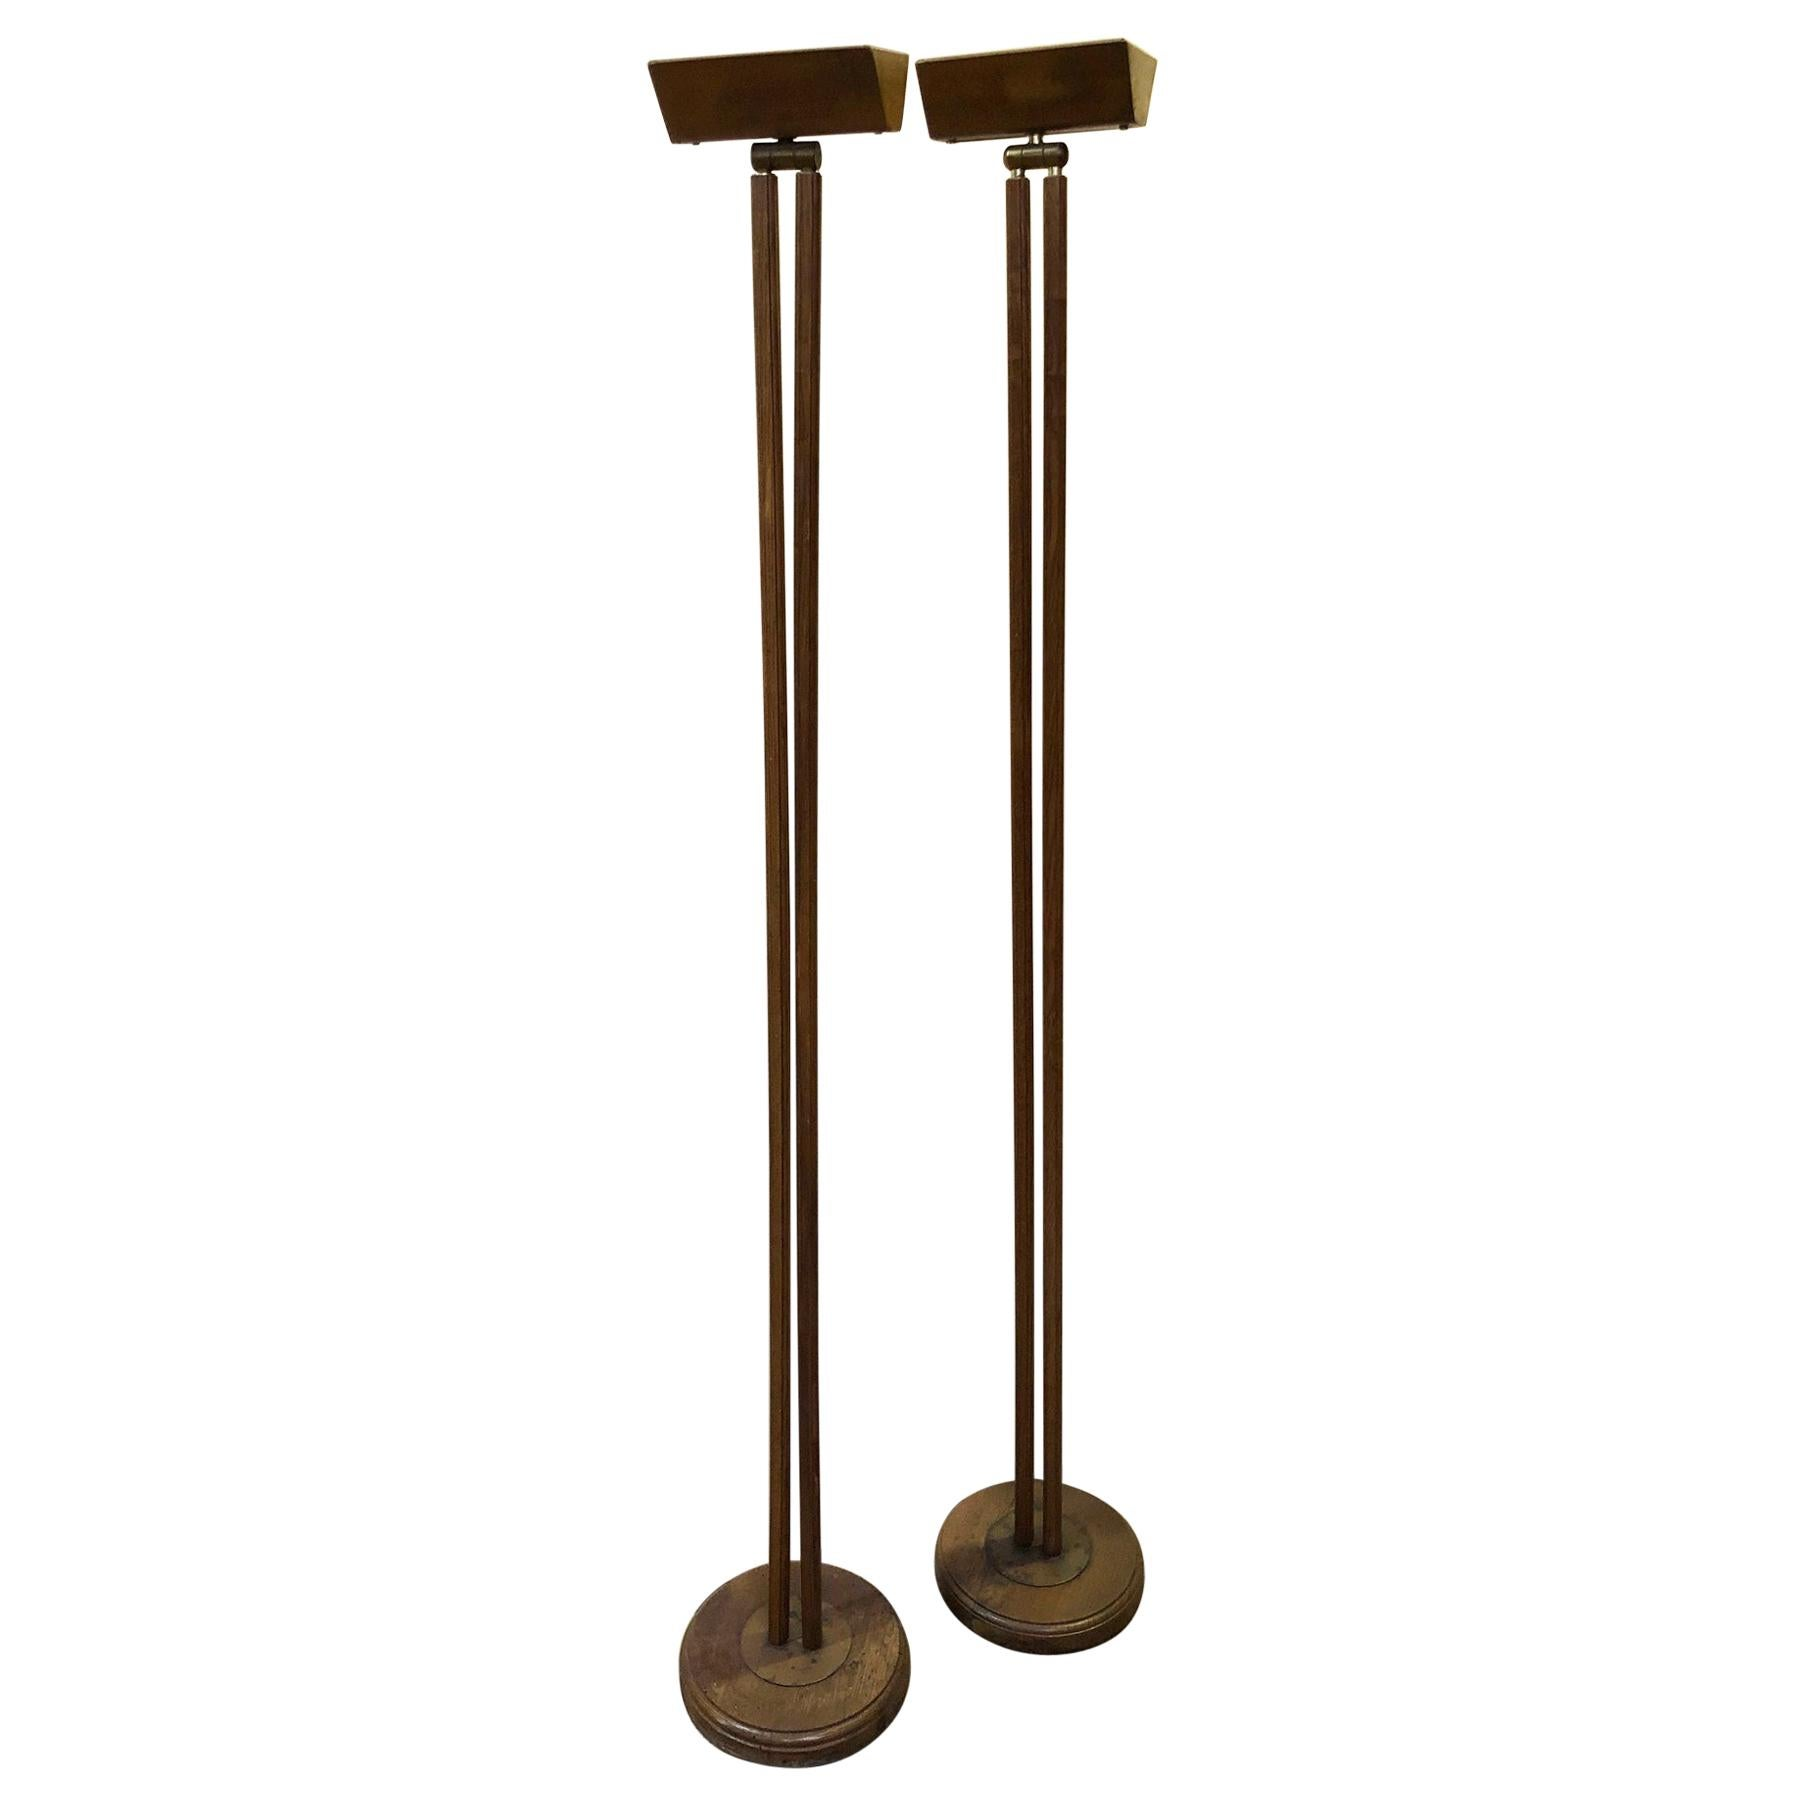 Pair of Italian Oak and Brass Floor Lamps from 1970s